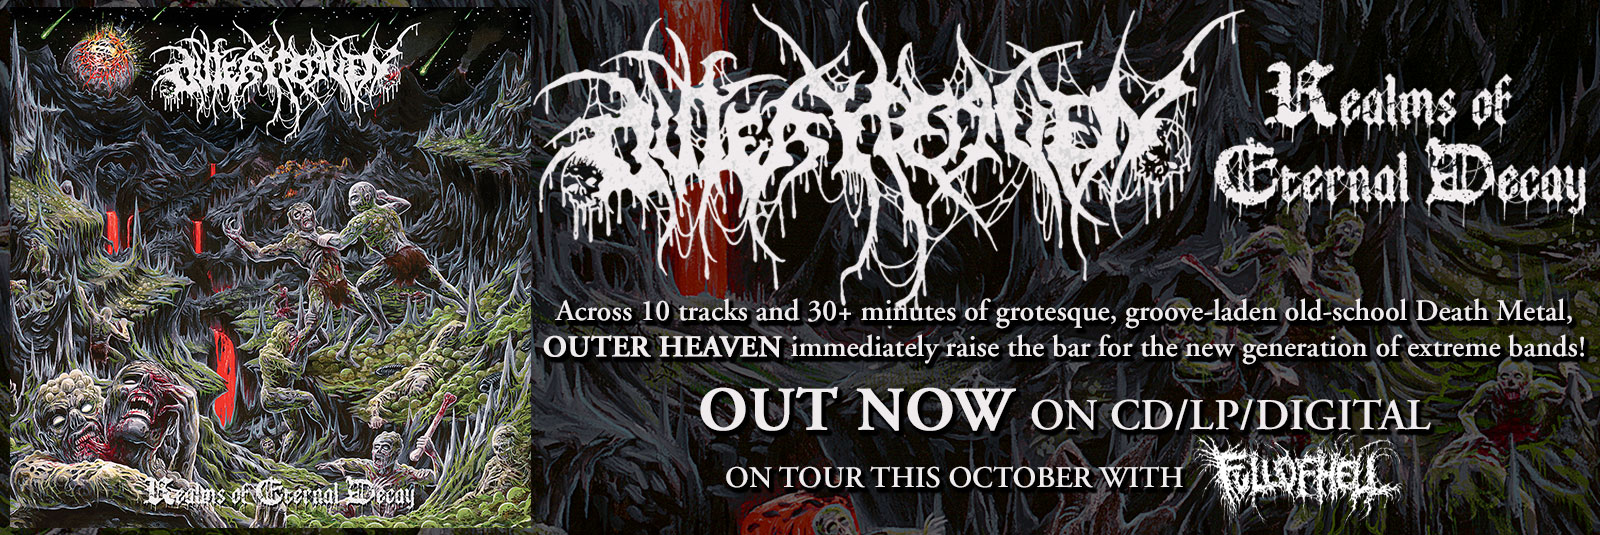 outer-heaven-realms-of-eternal-decay-death-metal-relapse